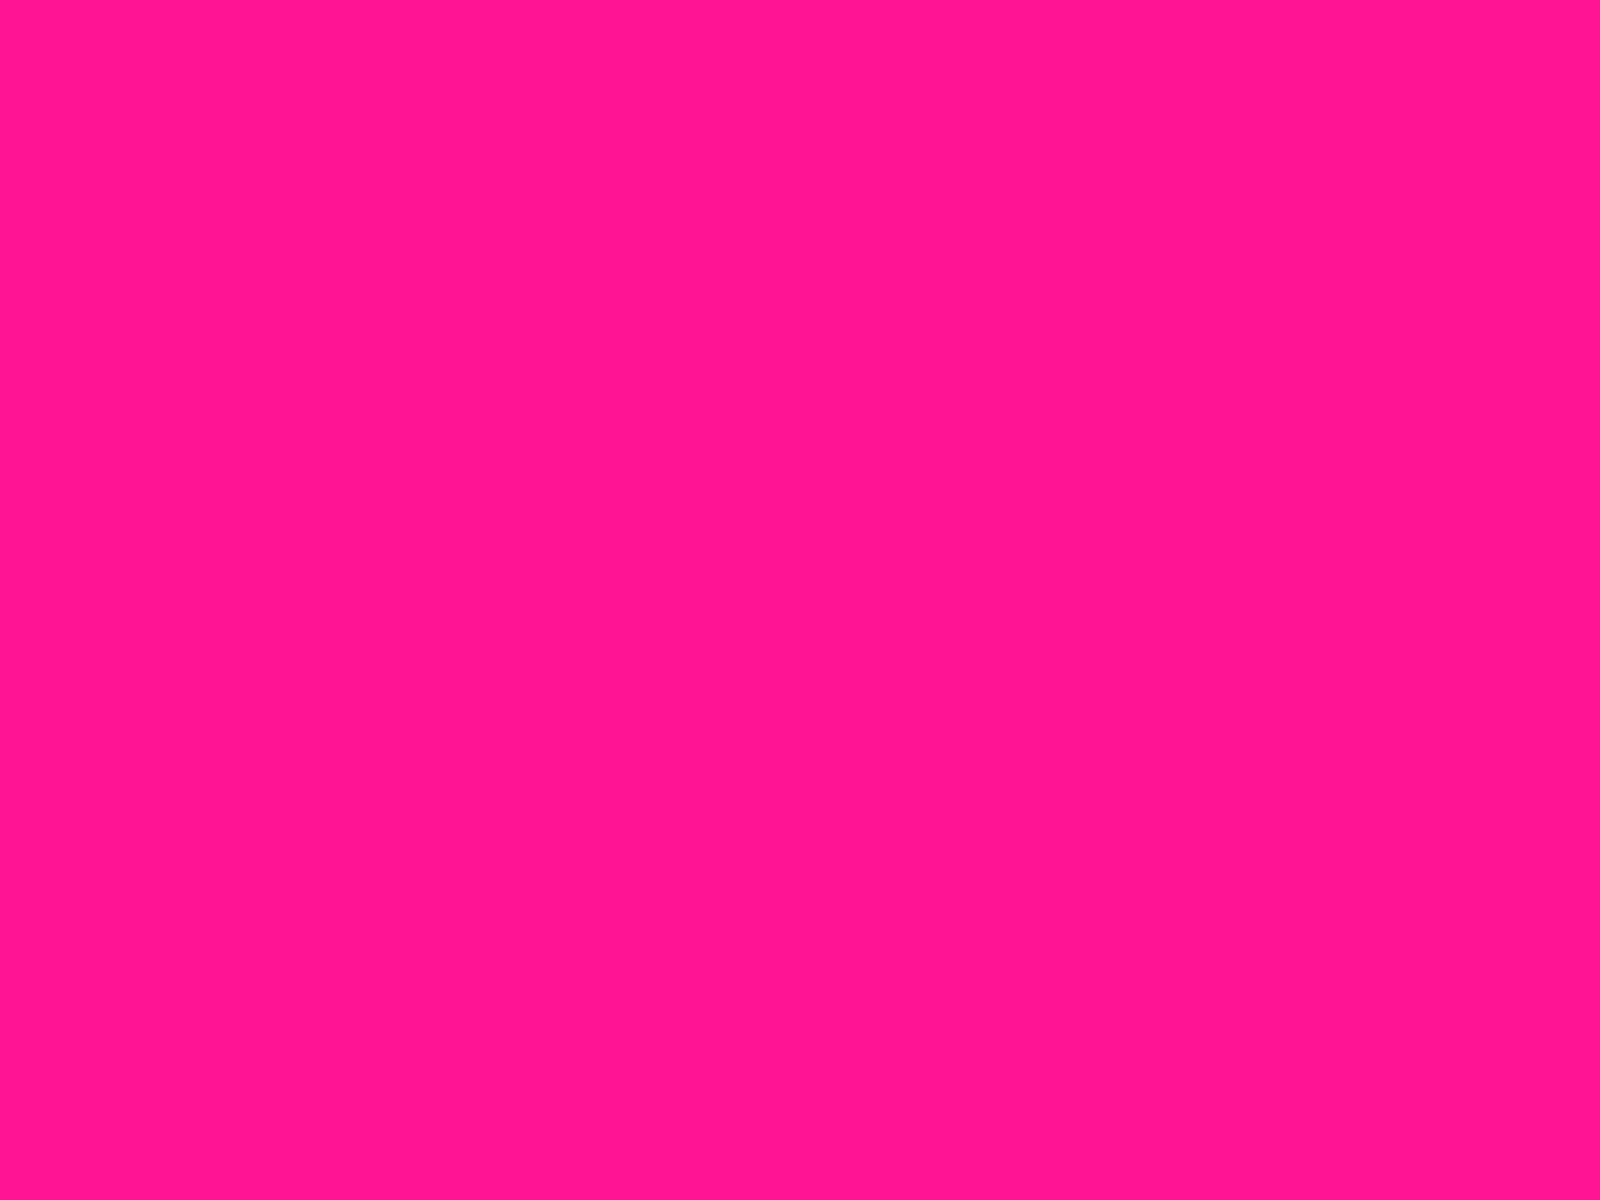 1600x1200 Deep Pink Solid Color Background